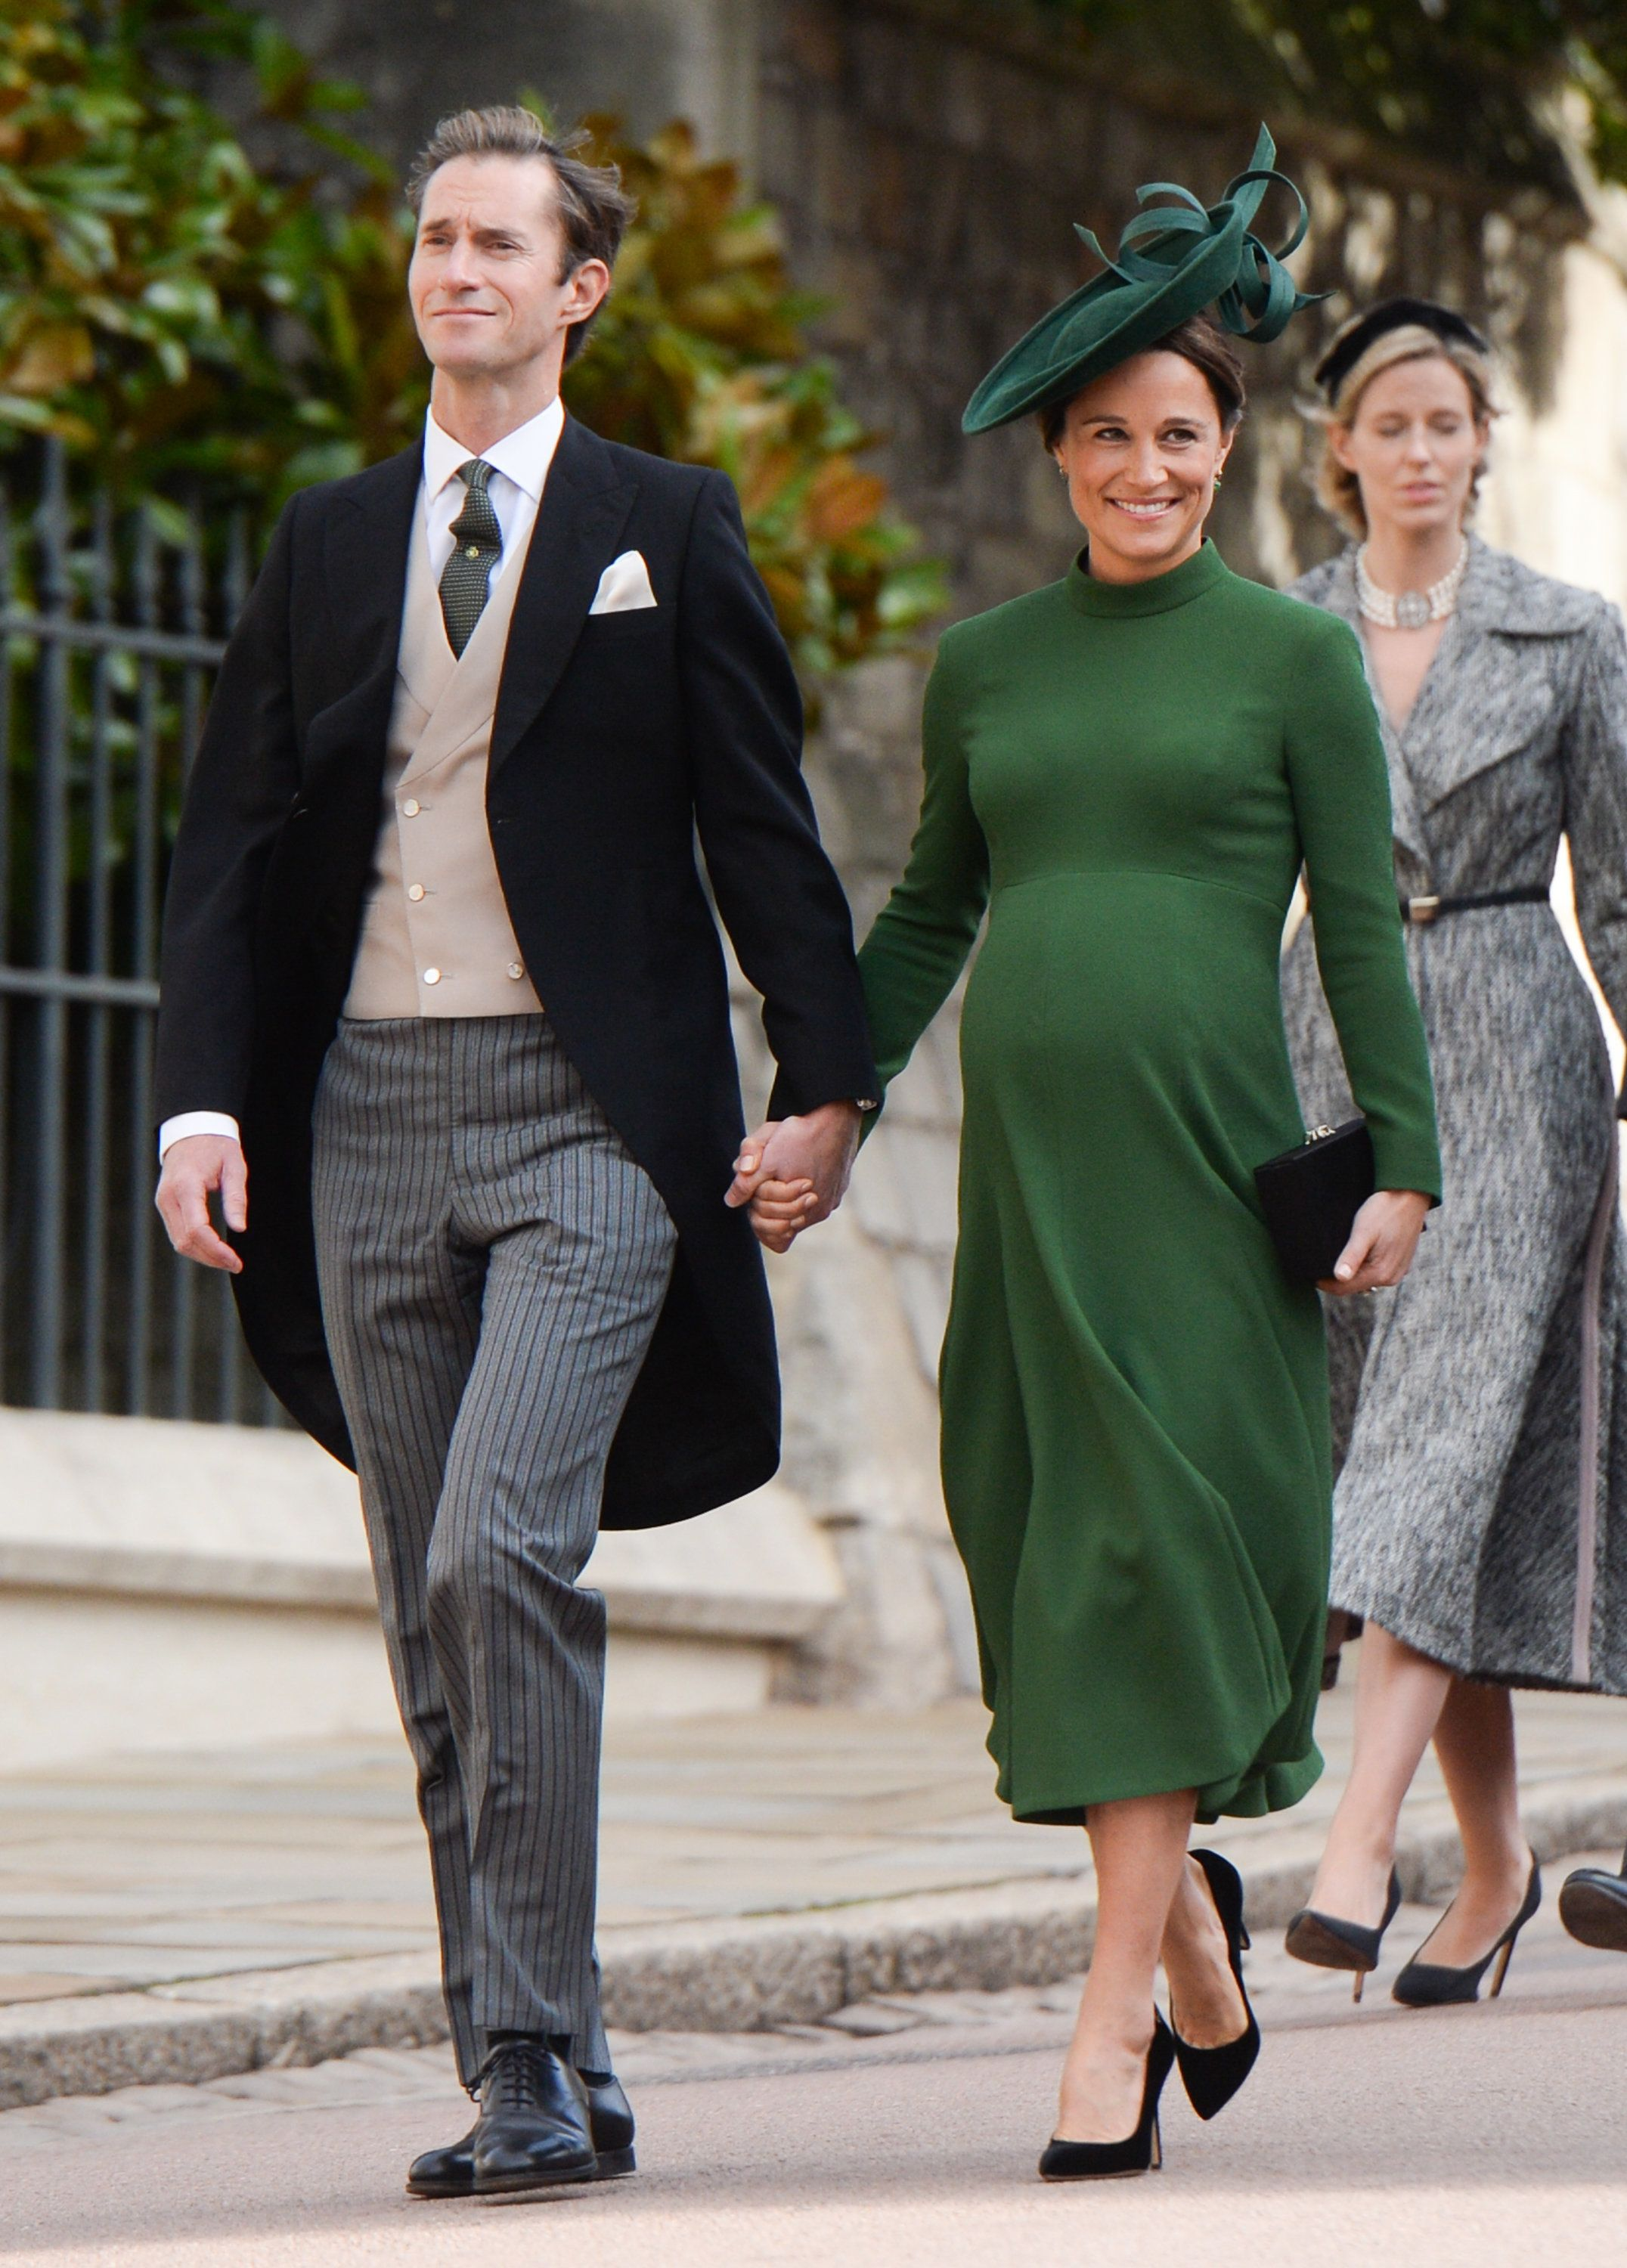 WINDSOR, ENGLAND - OCTOBER 12:  James Matthews and Pippa Middleton attend the wedding of Princess Eugenie of York and Jack Brooksbank at St George's Chapel in Windsor Castle on October 12, 2018 in Windsor, England.  (Photo by Pool/Samir Hussein/WireImage)